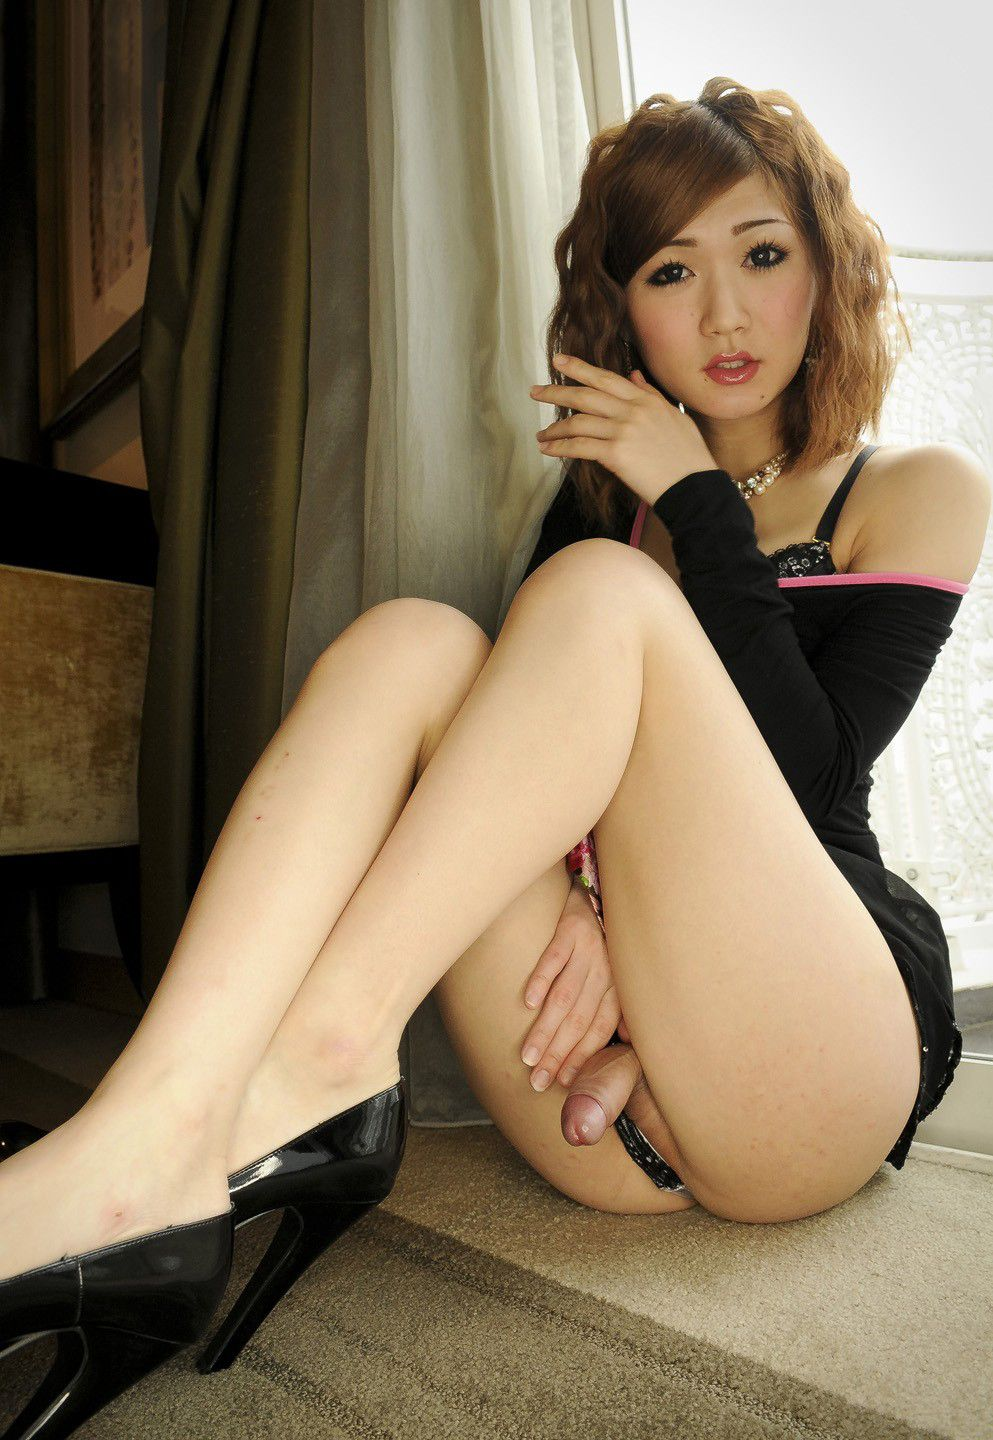 Gordon pussy beautiful asian shemale females